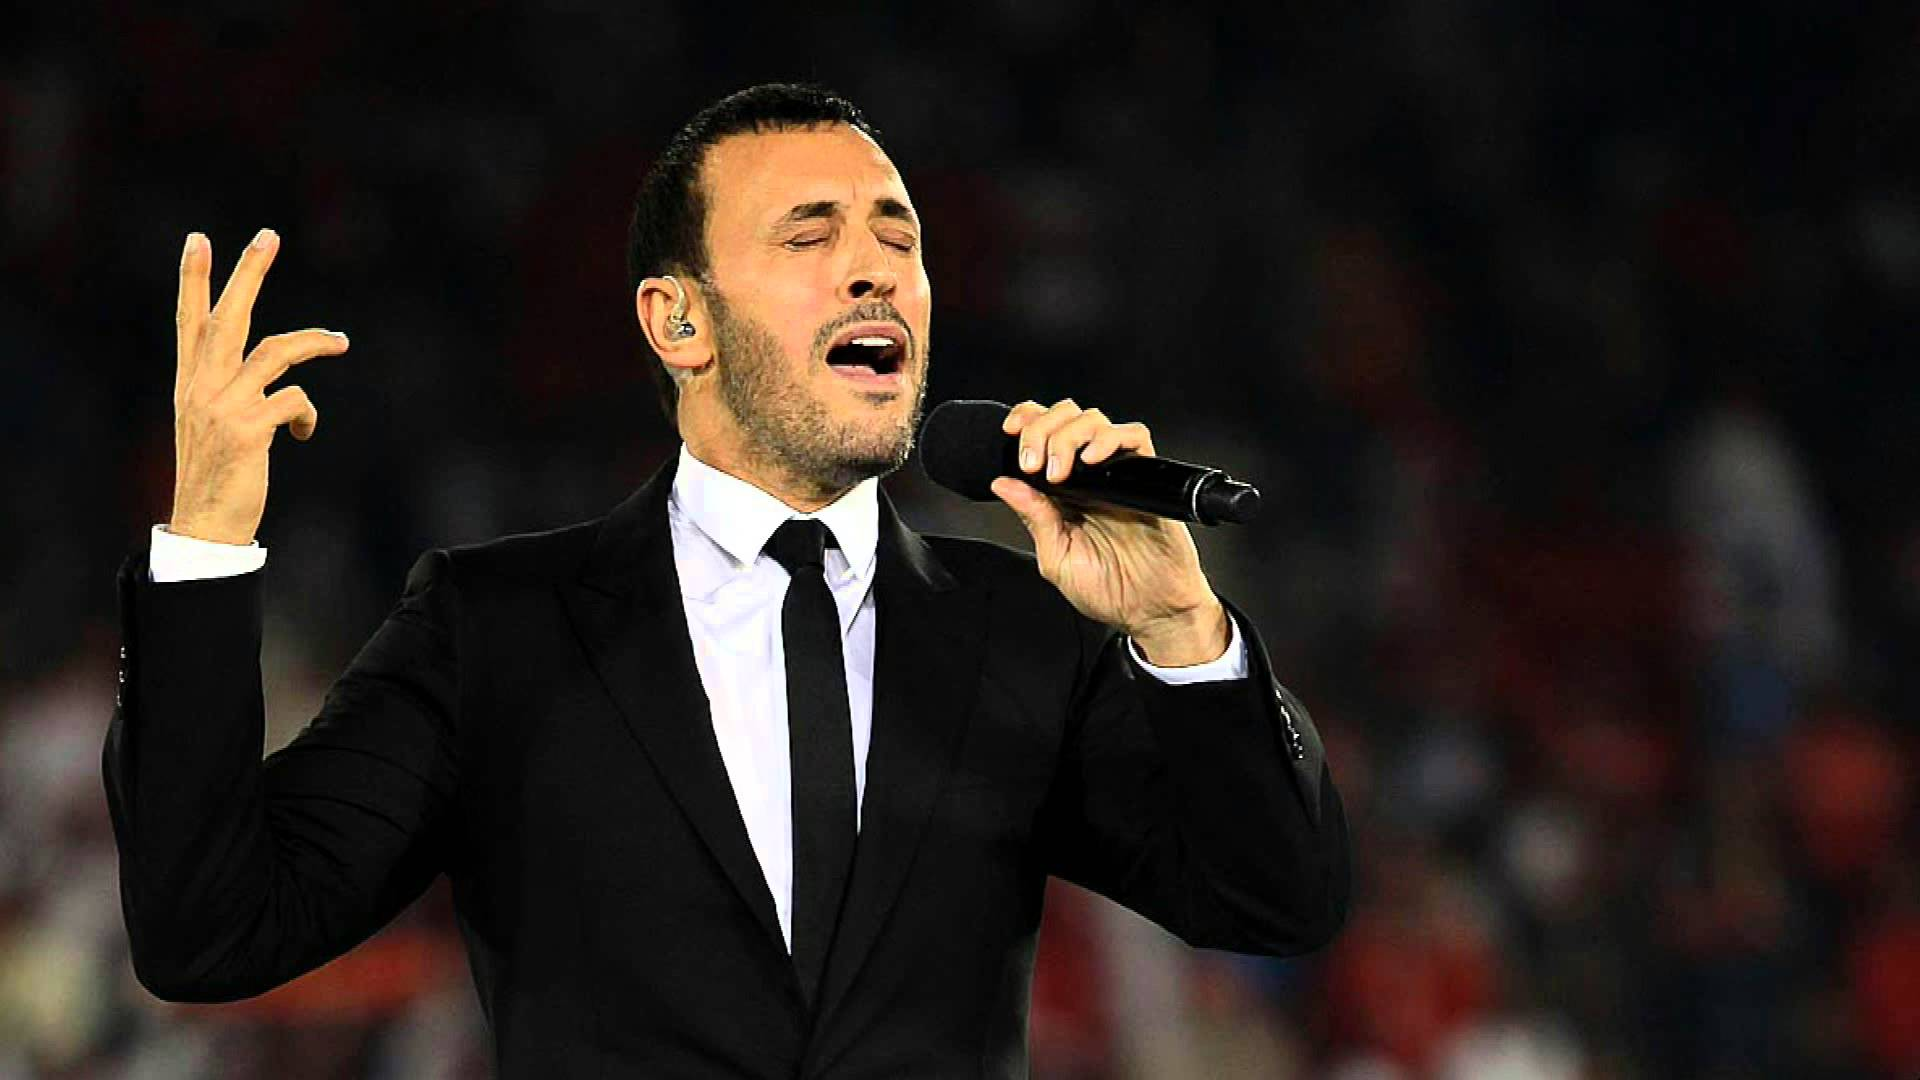 Mawazine Festival, one of the world's biggest music events- Kadim Al Sahir